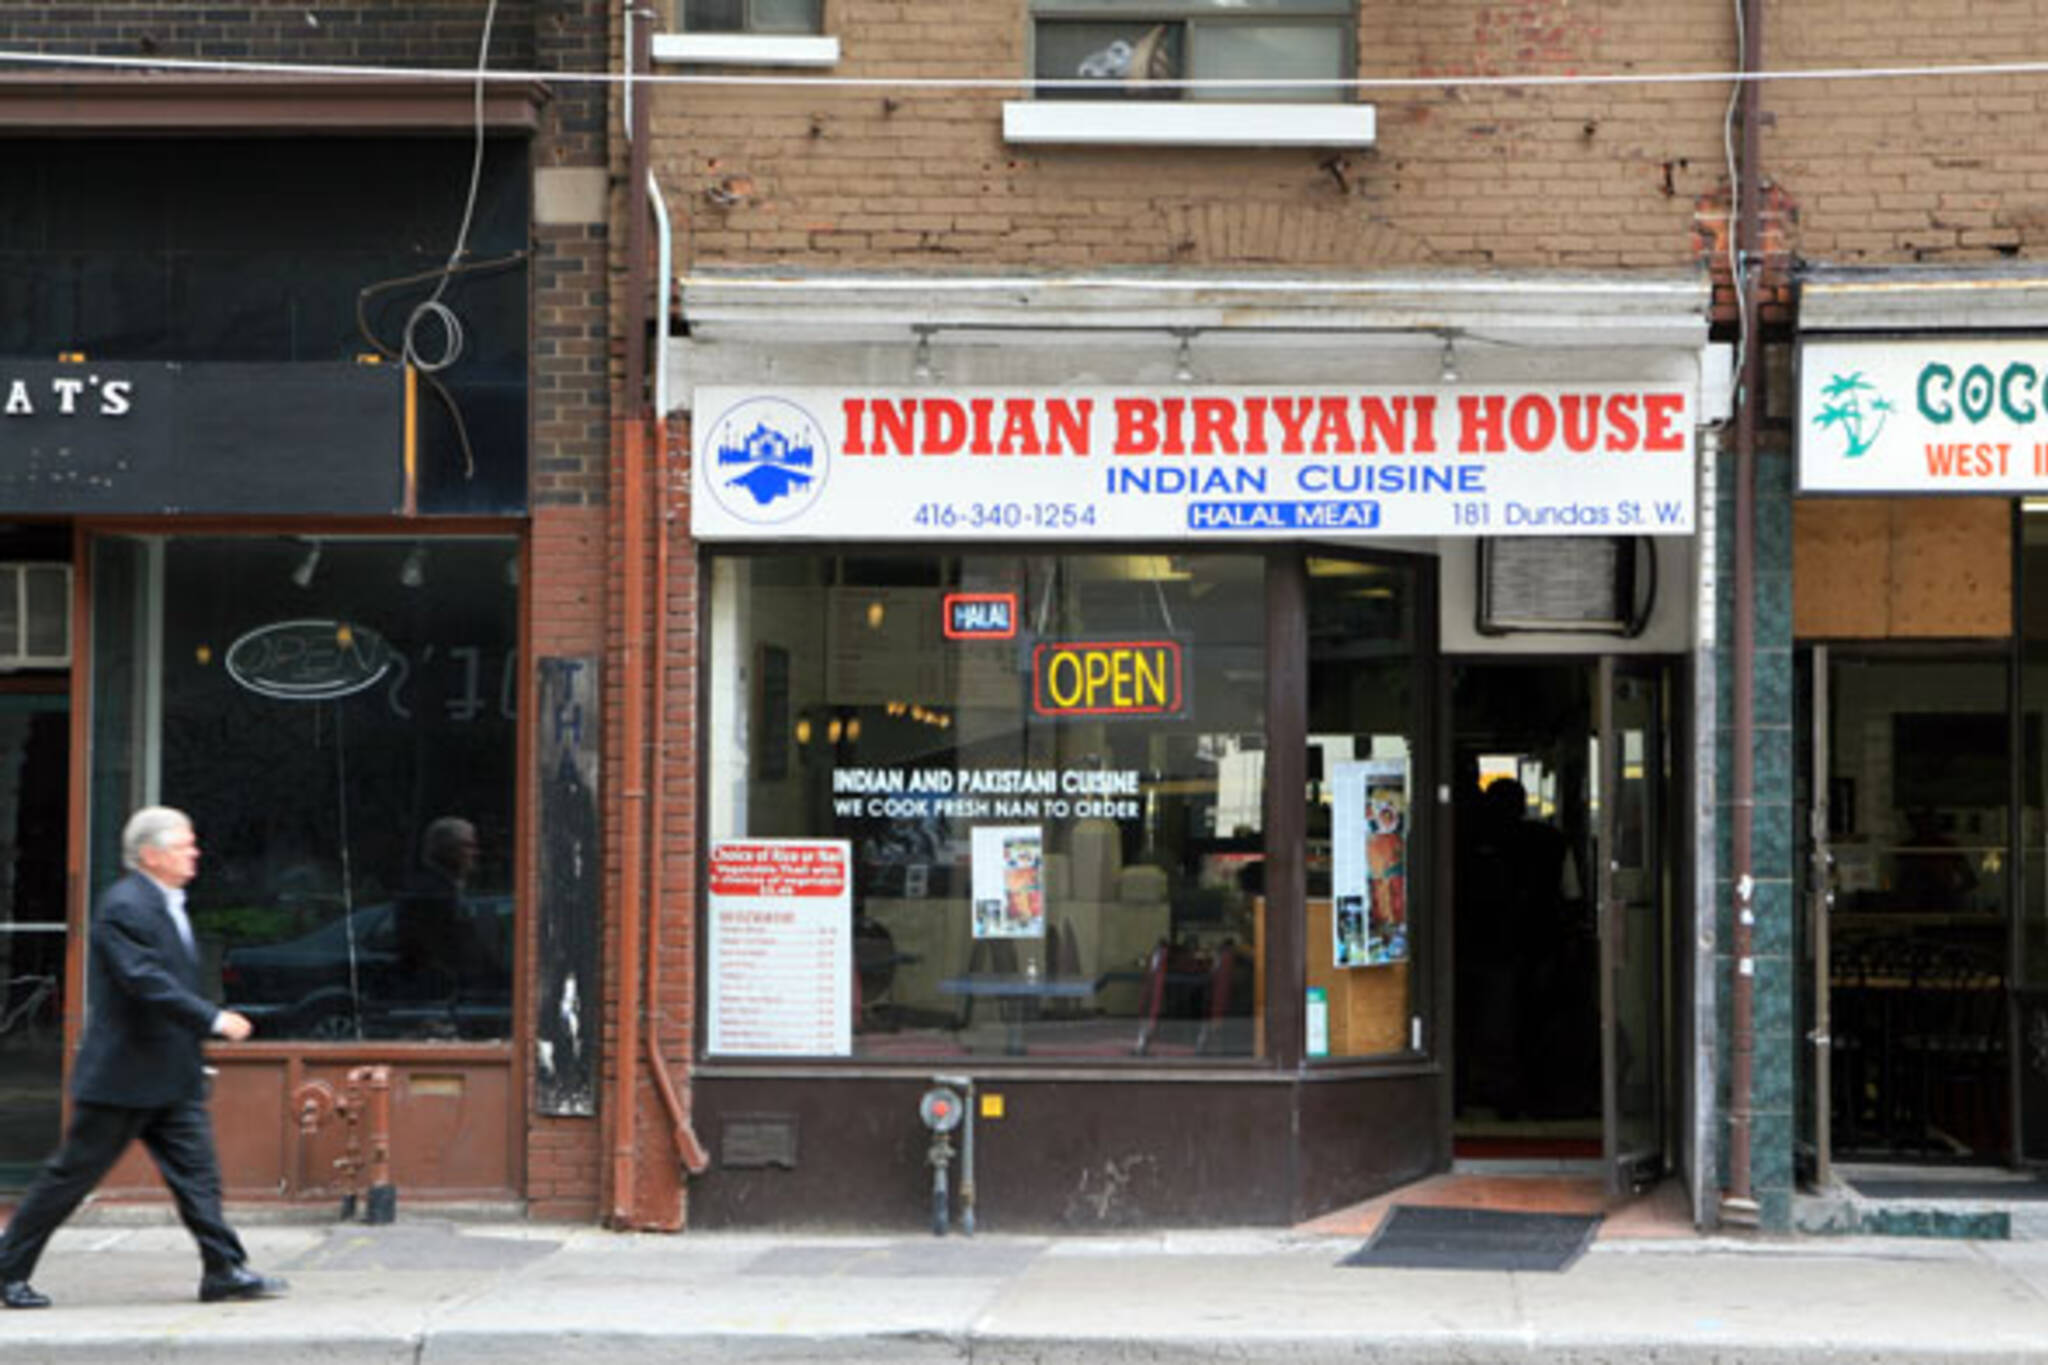 Indian Biryani House